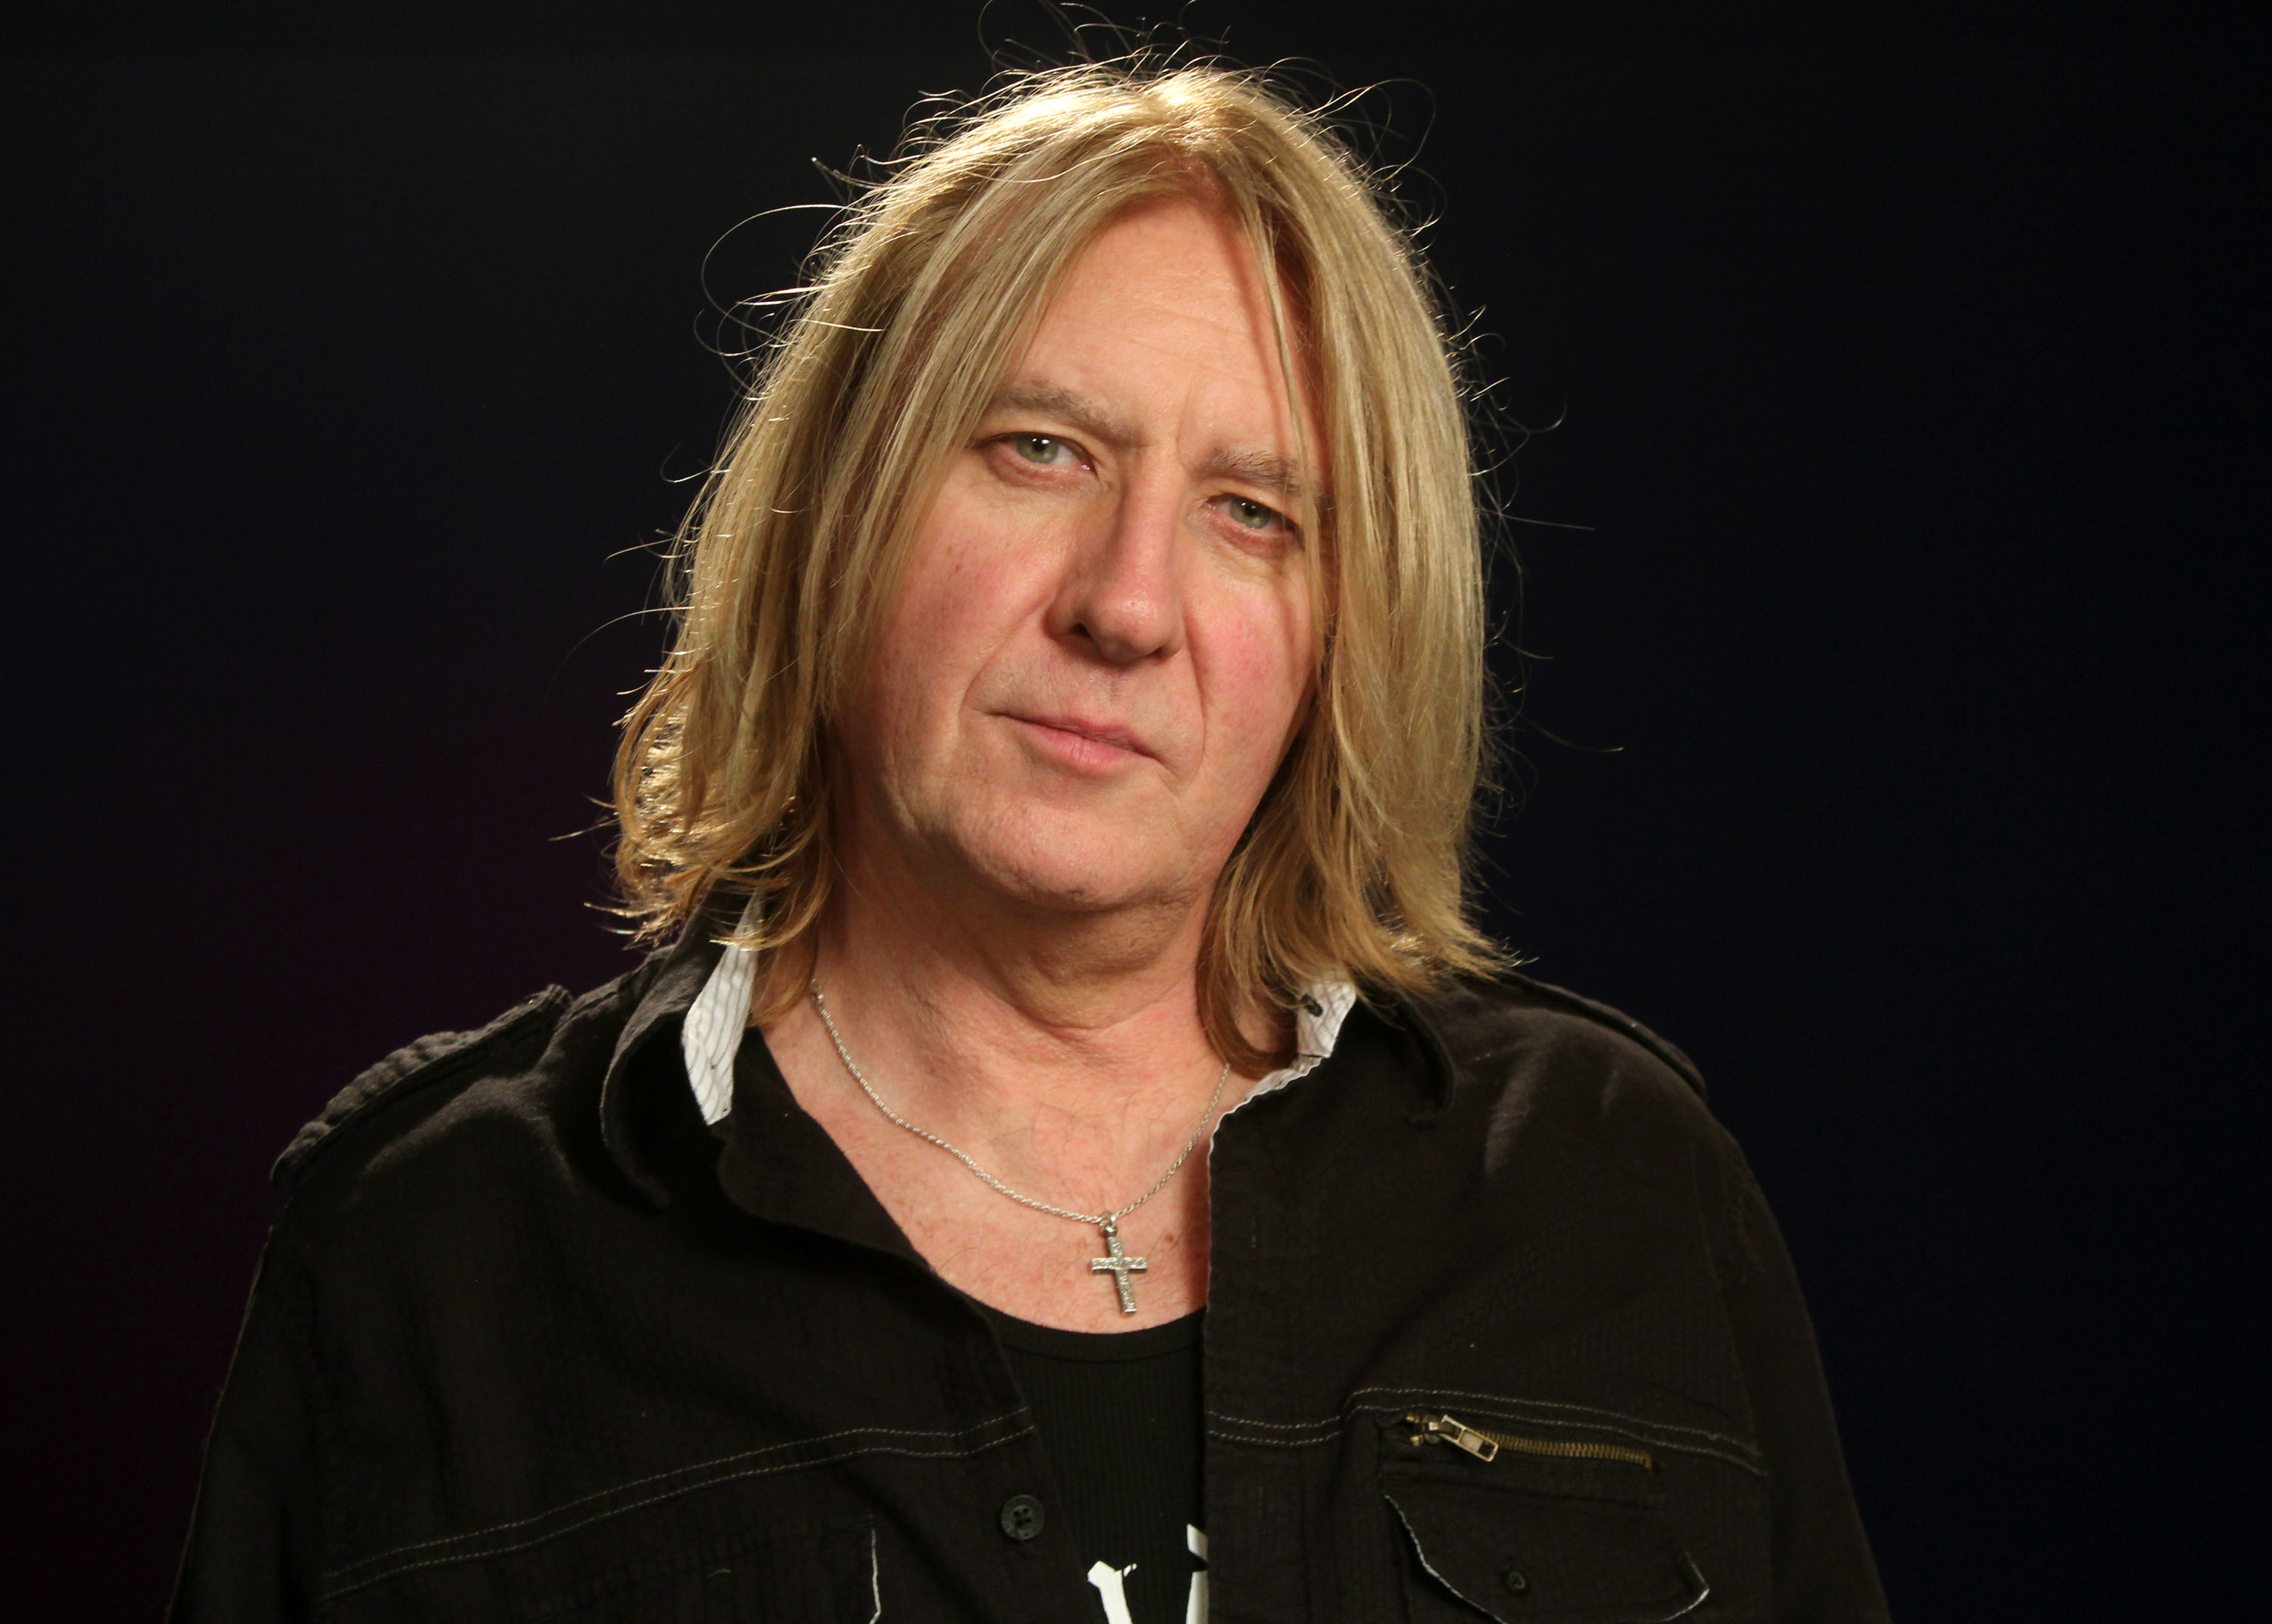 Def Leppard frontman on maintaining the stamina to play live